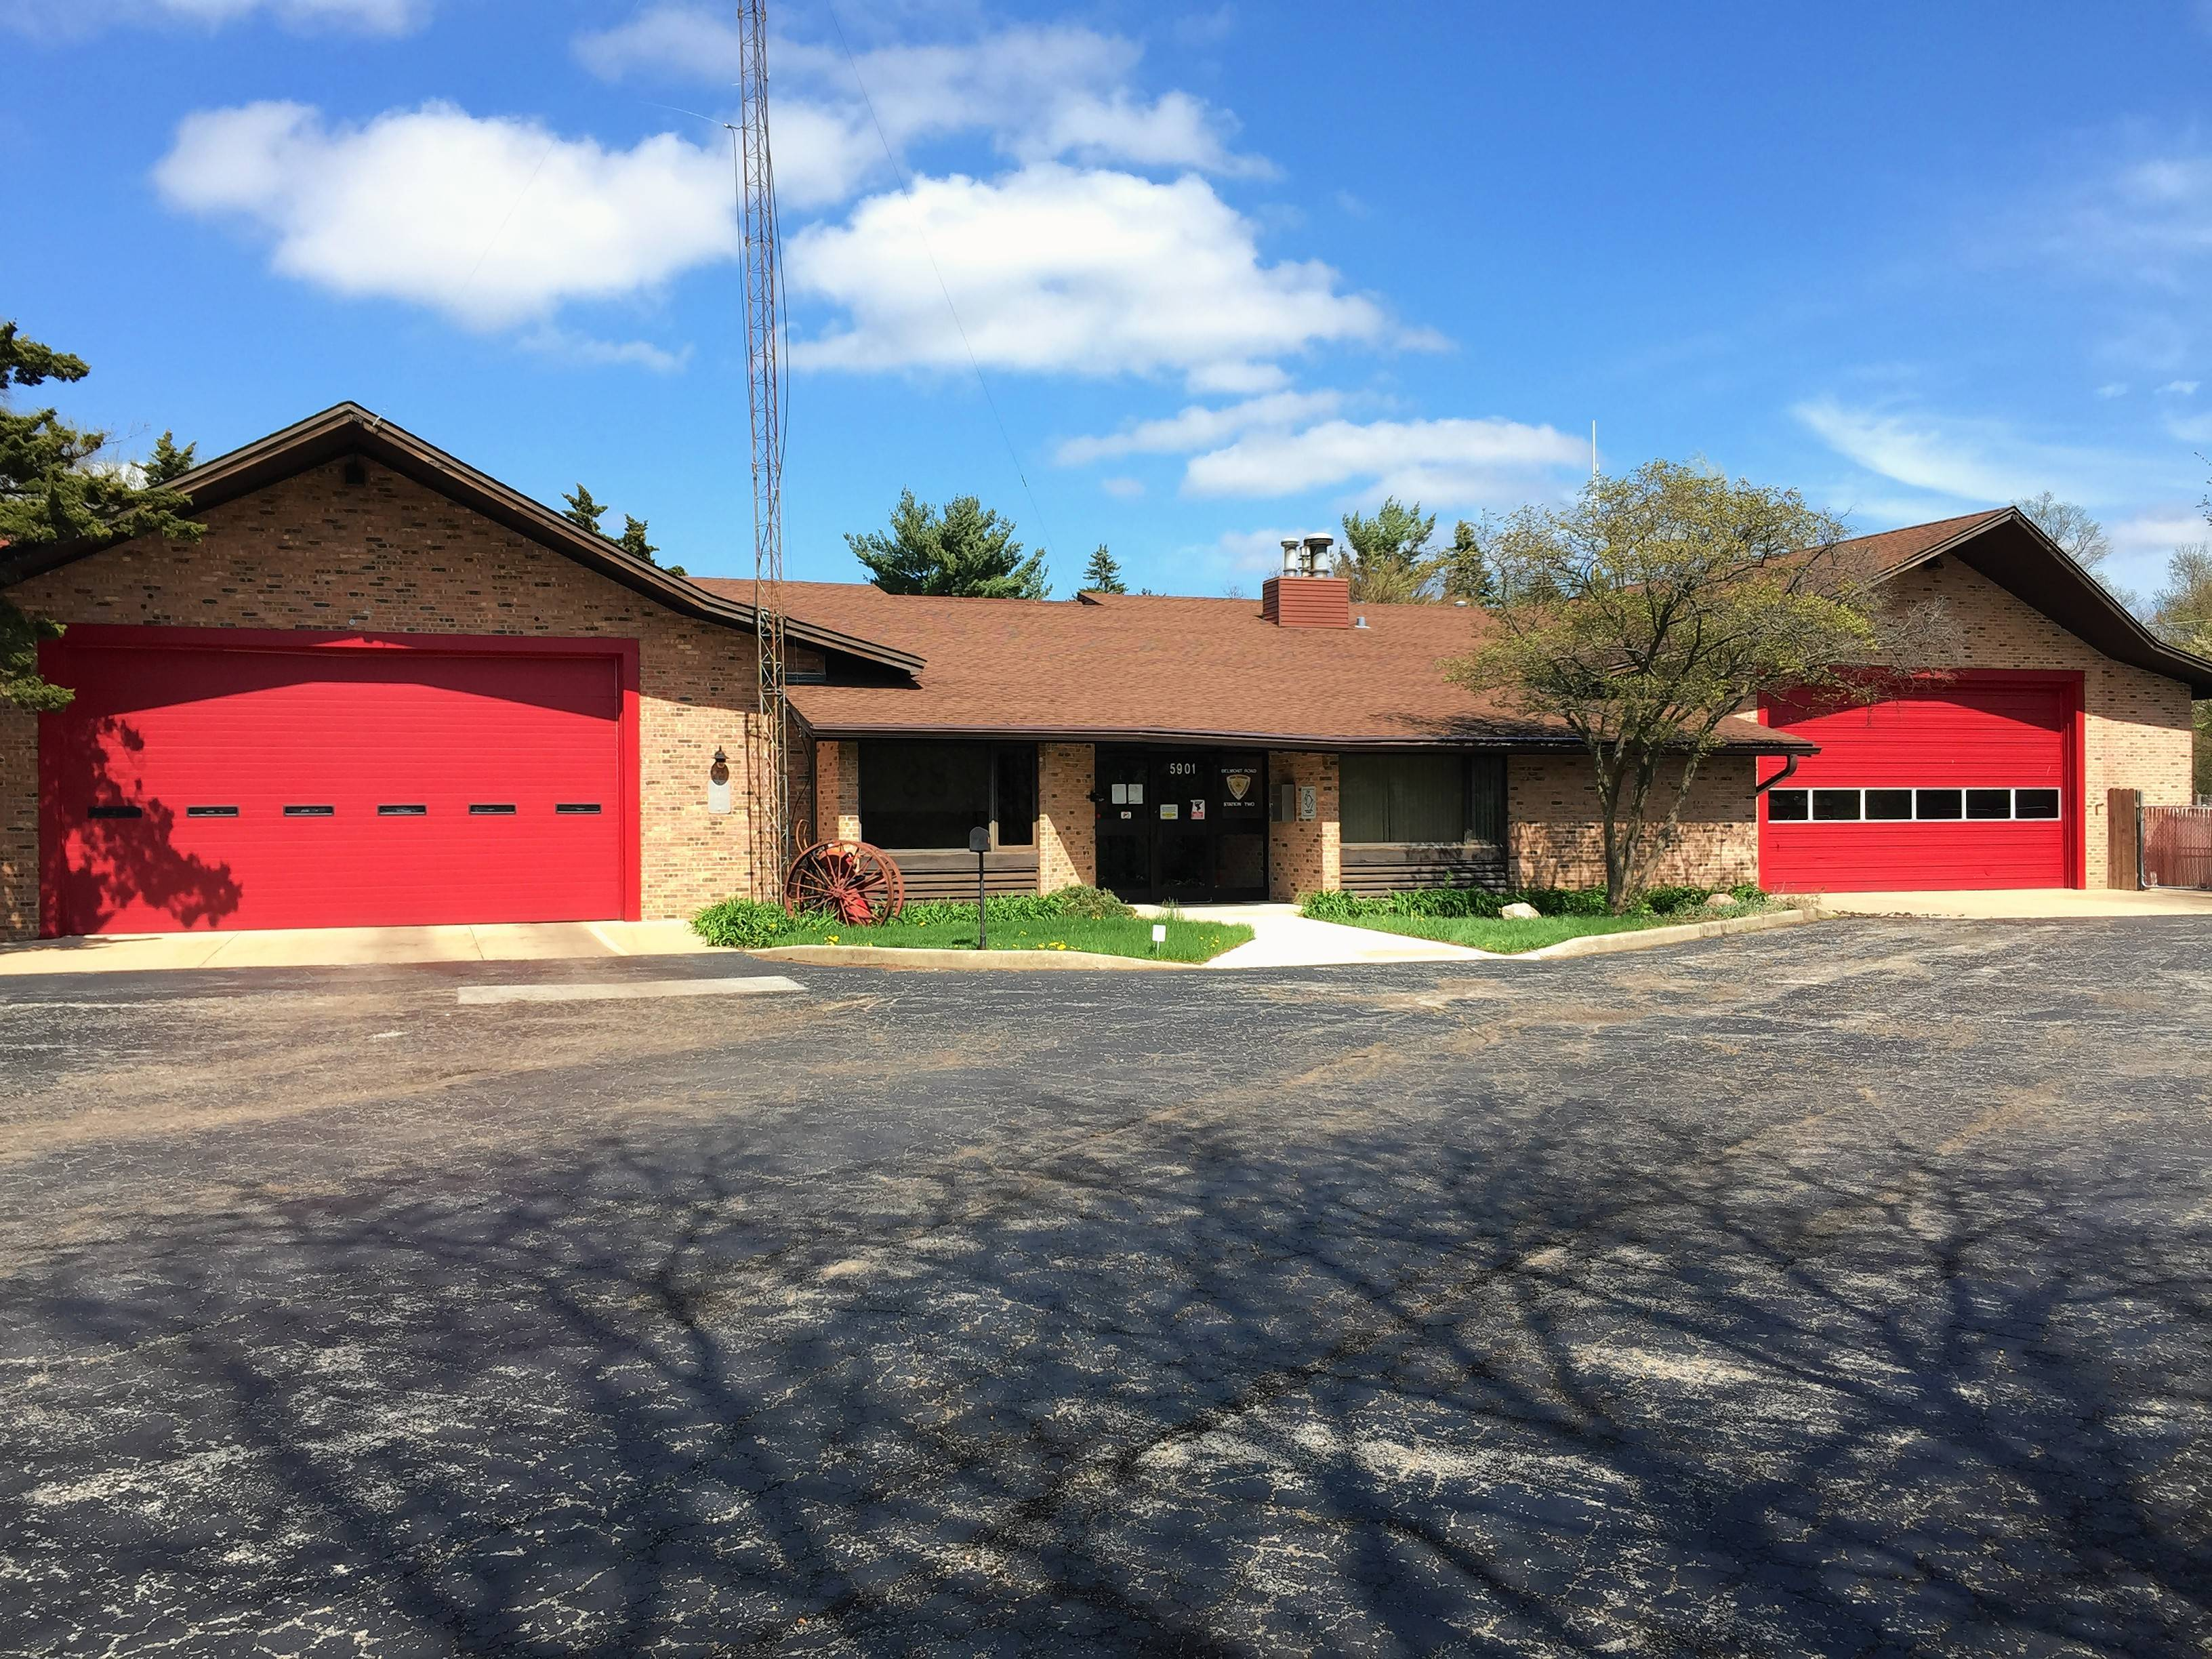 Plan to close fire station irks residents near Downers Grove